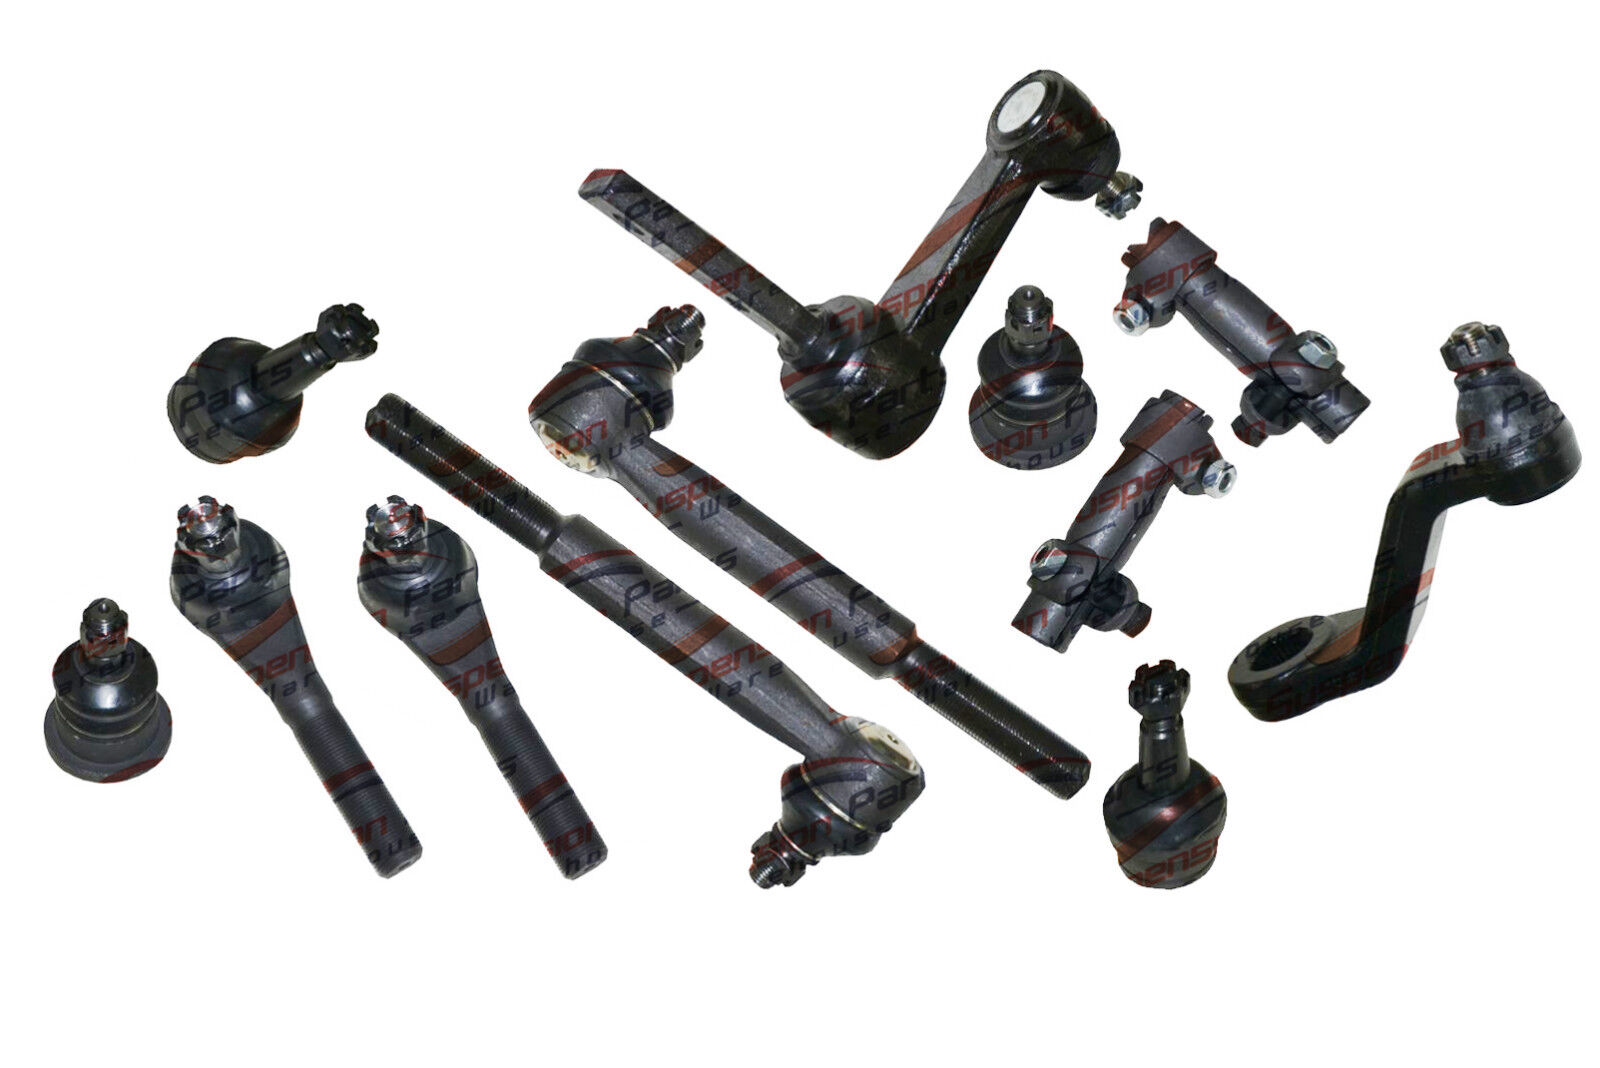 2WD DodGE Ram 1500 Front Steering Kit/Pitman/Idler Arms